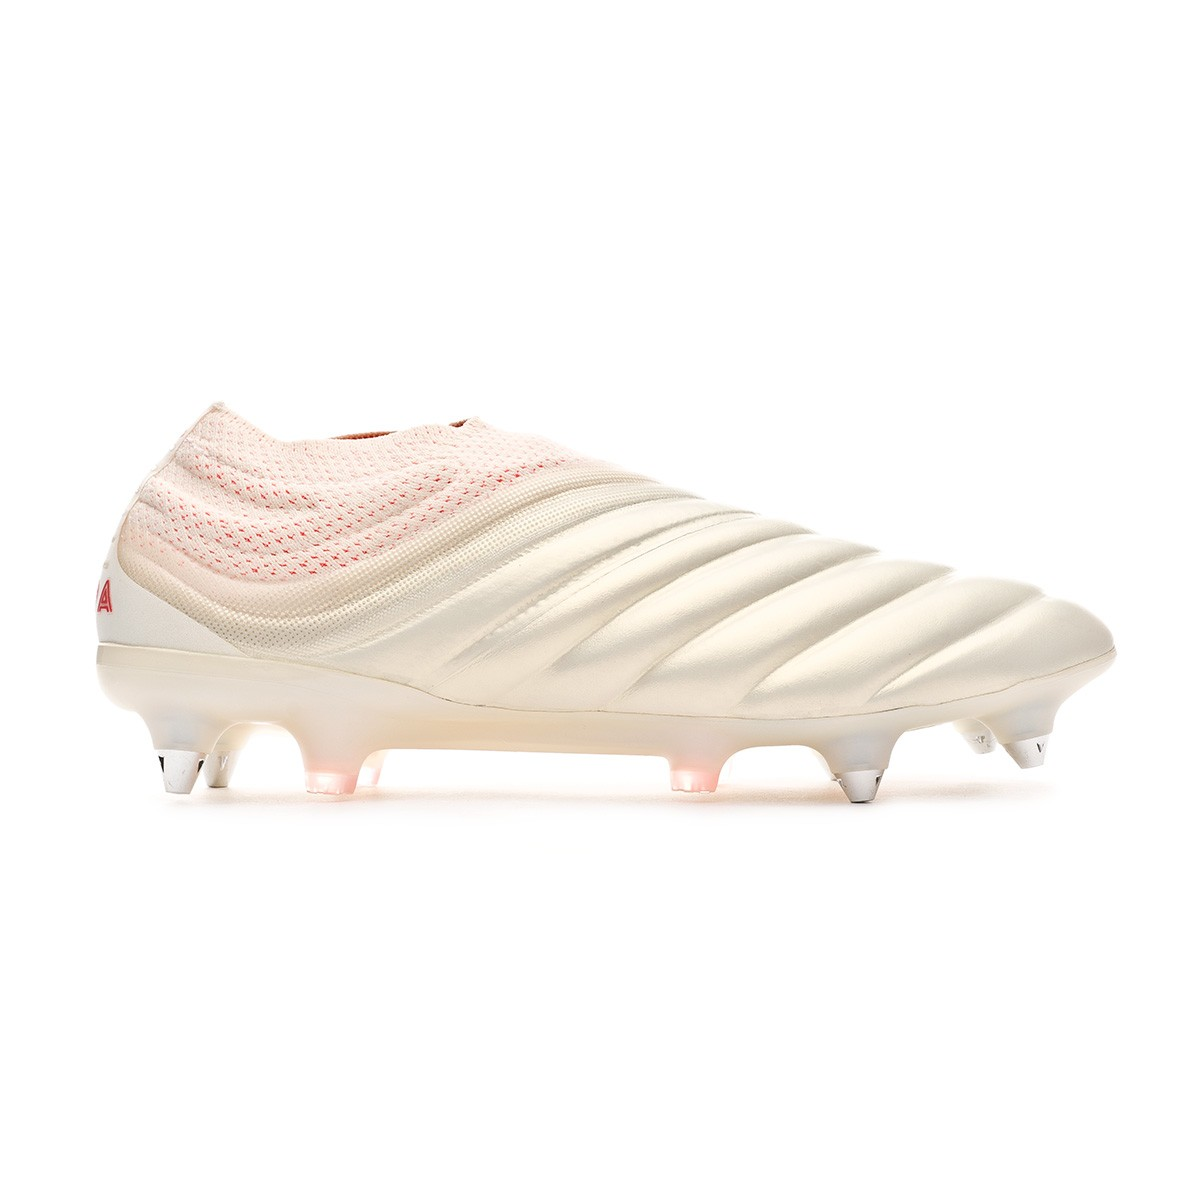 promo code 05f52 8c19c Boot adidas Copa 19+ SG Off white-Solar red-Off white - Football store  Fútbol Emotion